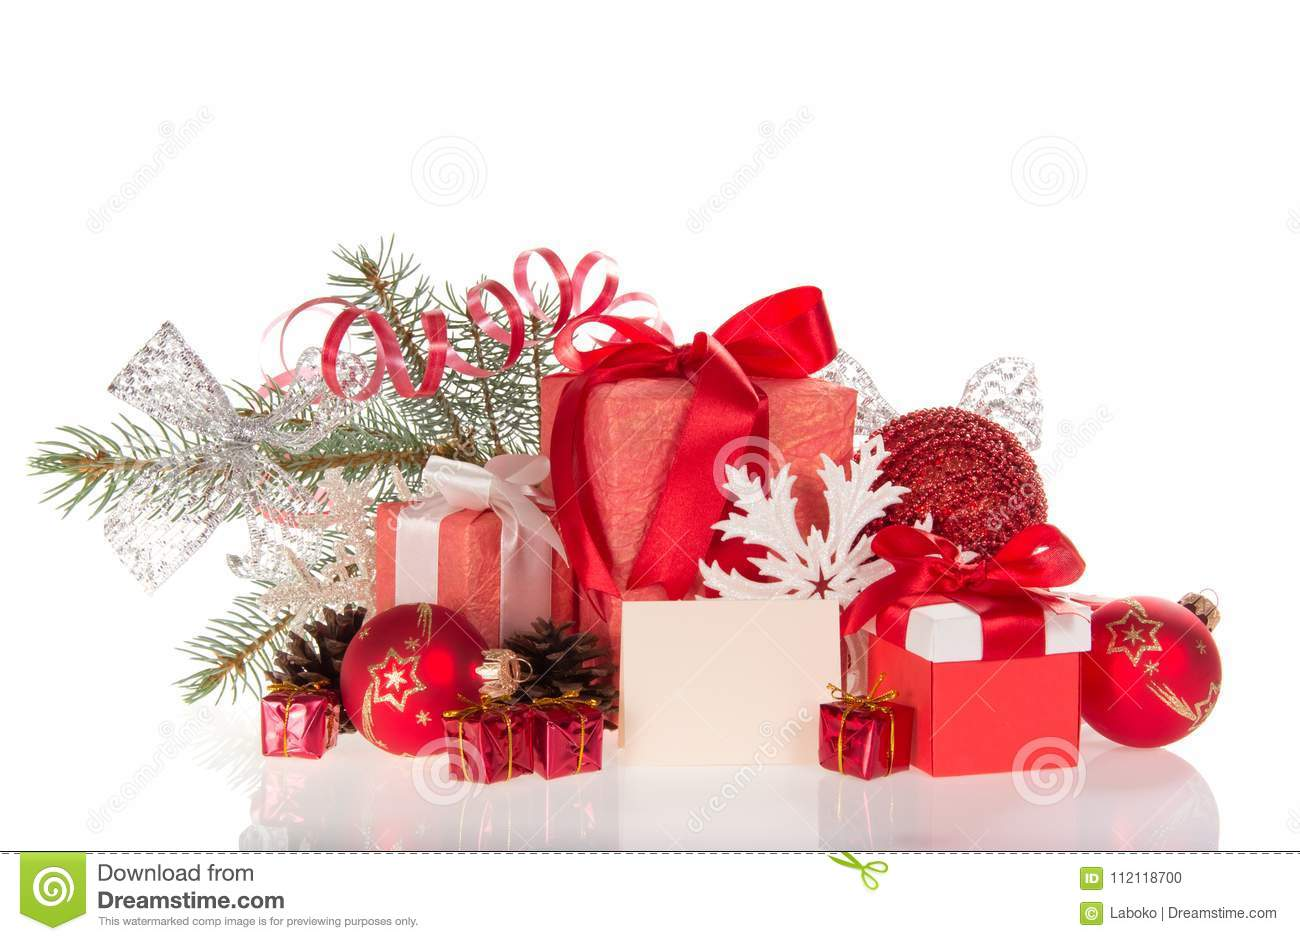 Pine Branch Christmas Decorations And Many Gift Boxes